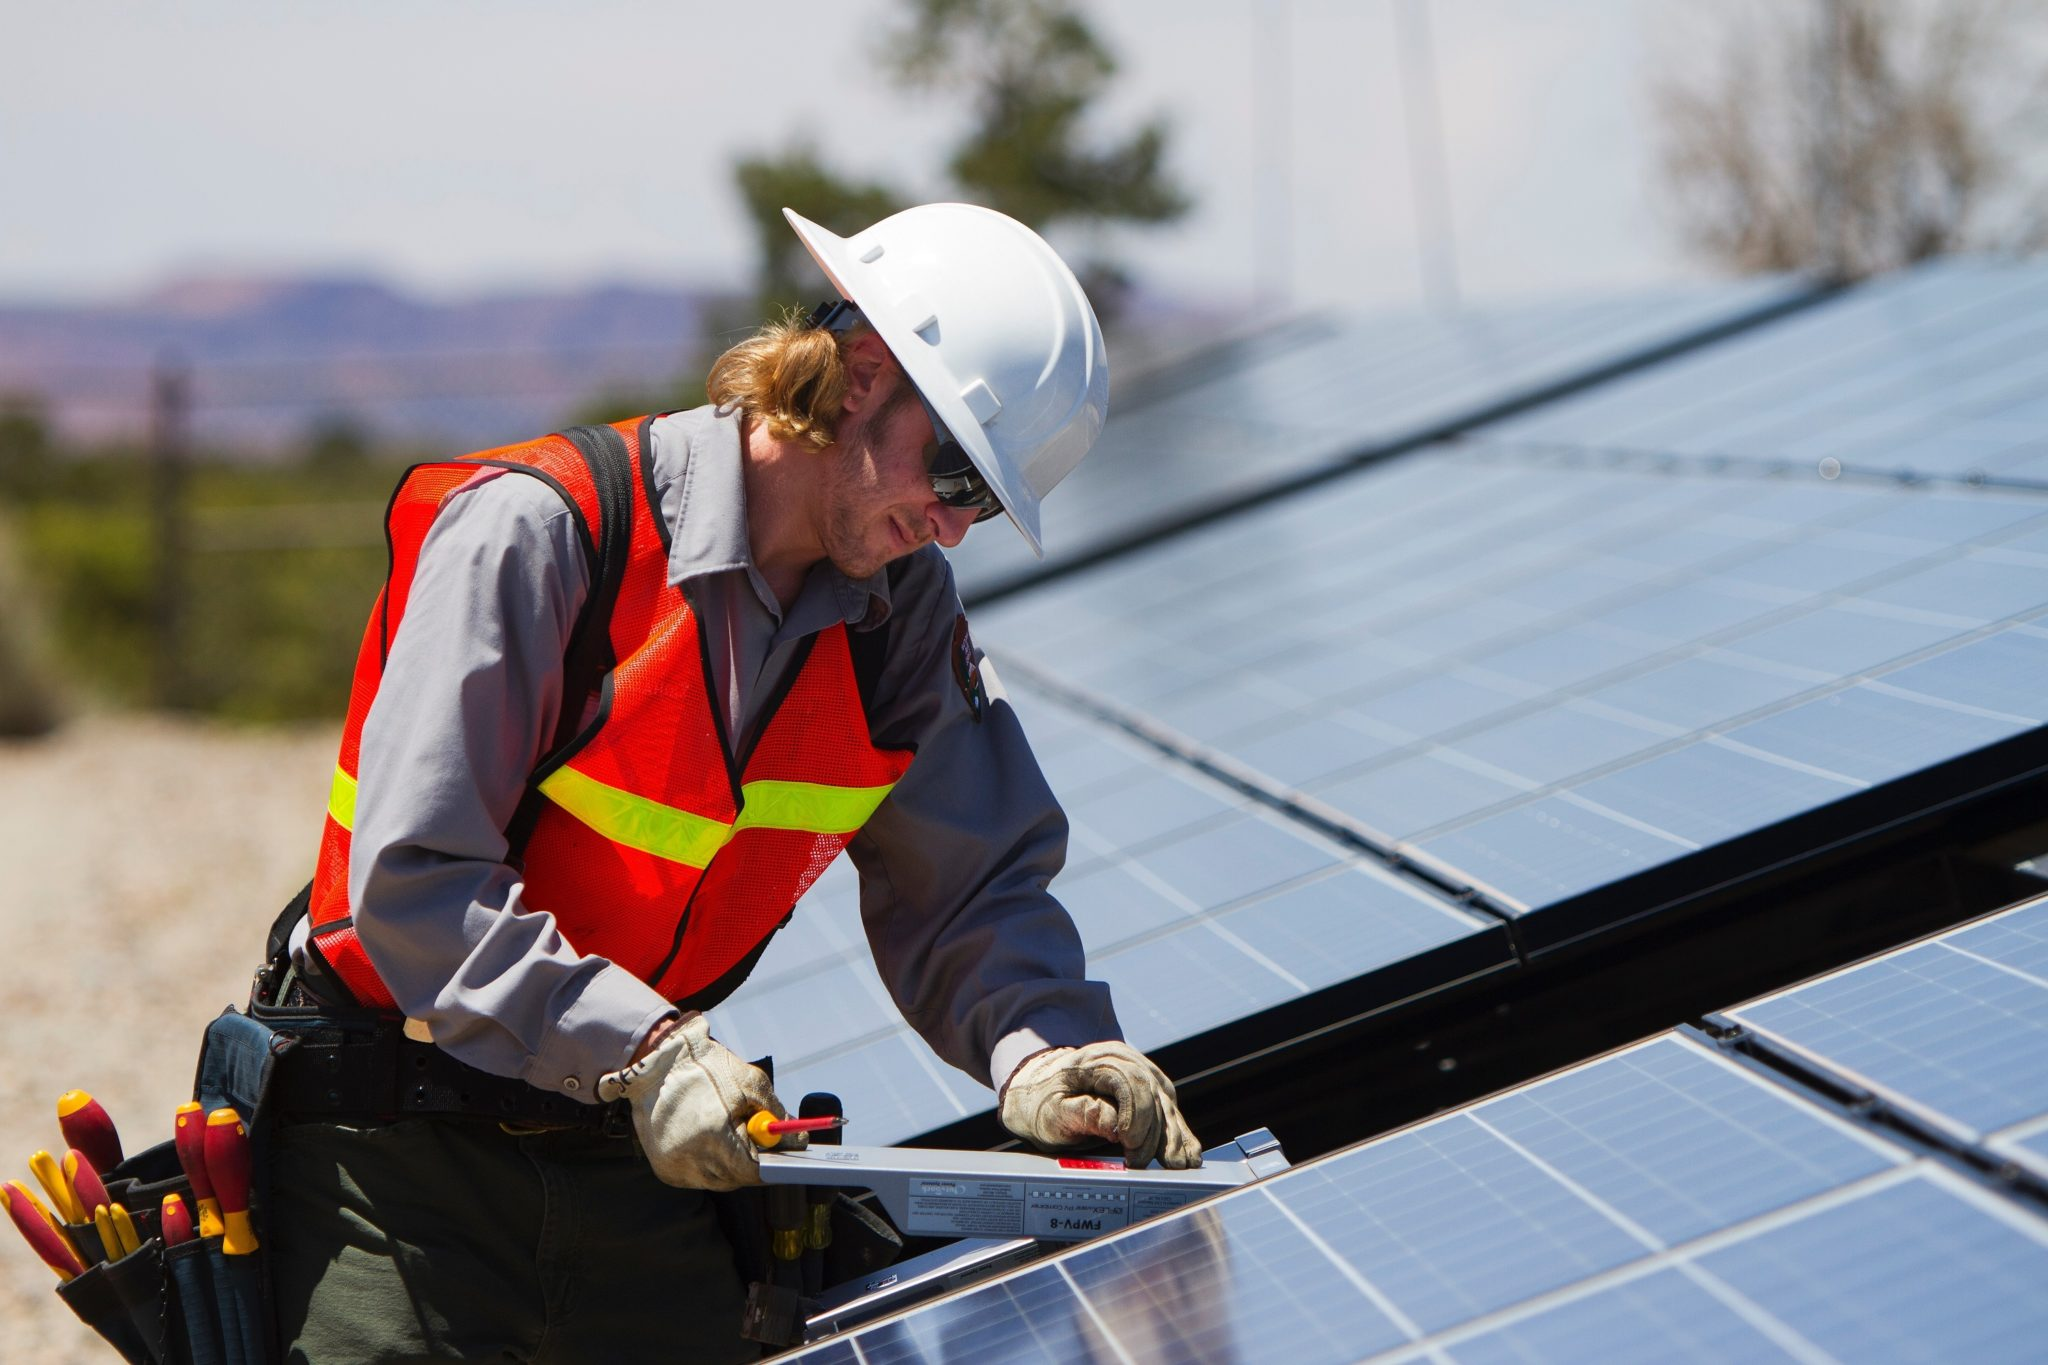 a person installing solar panels